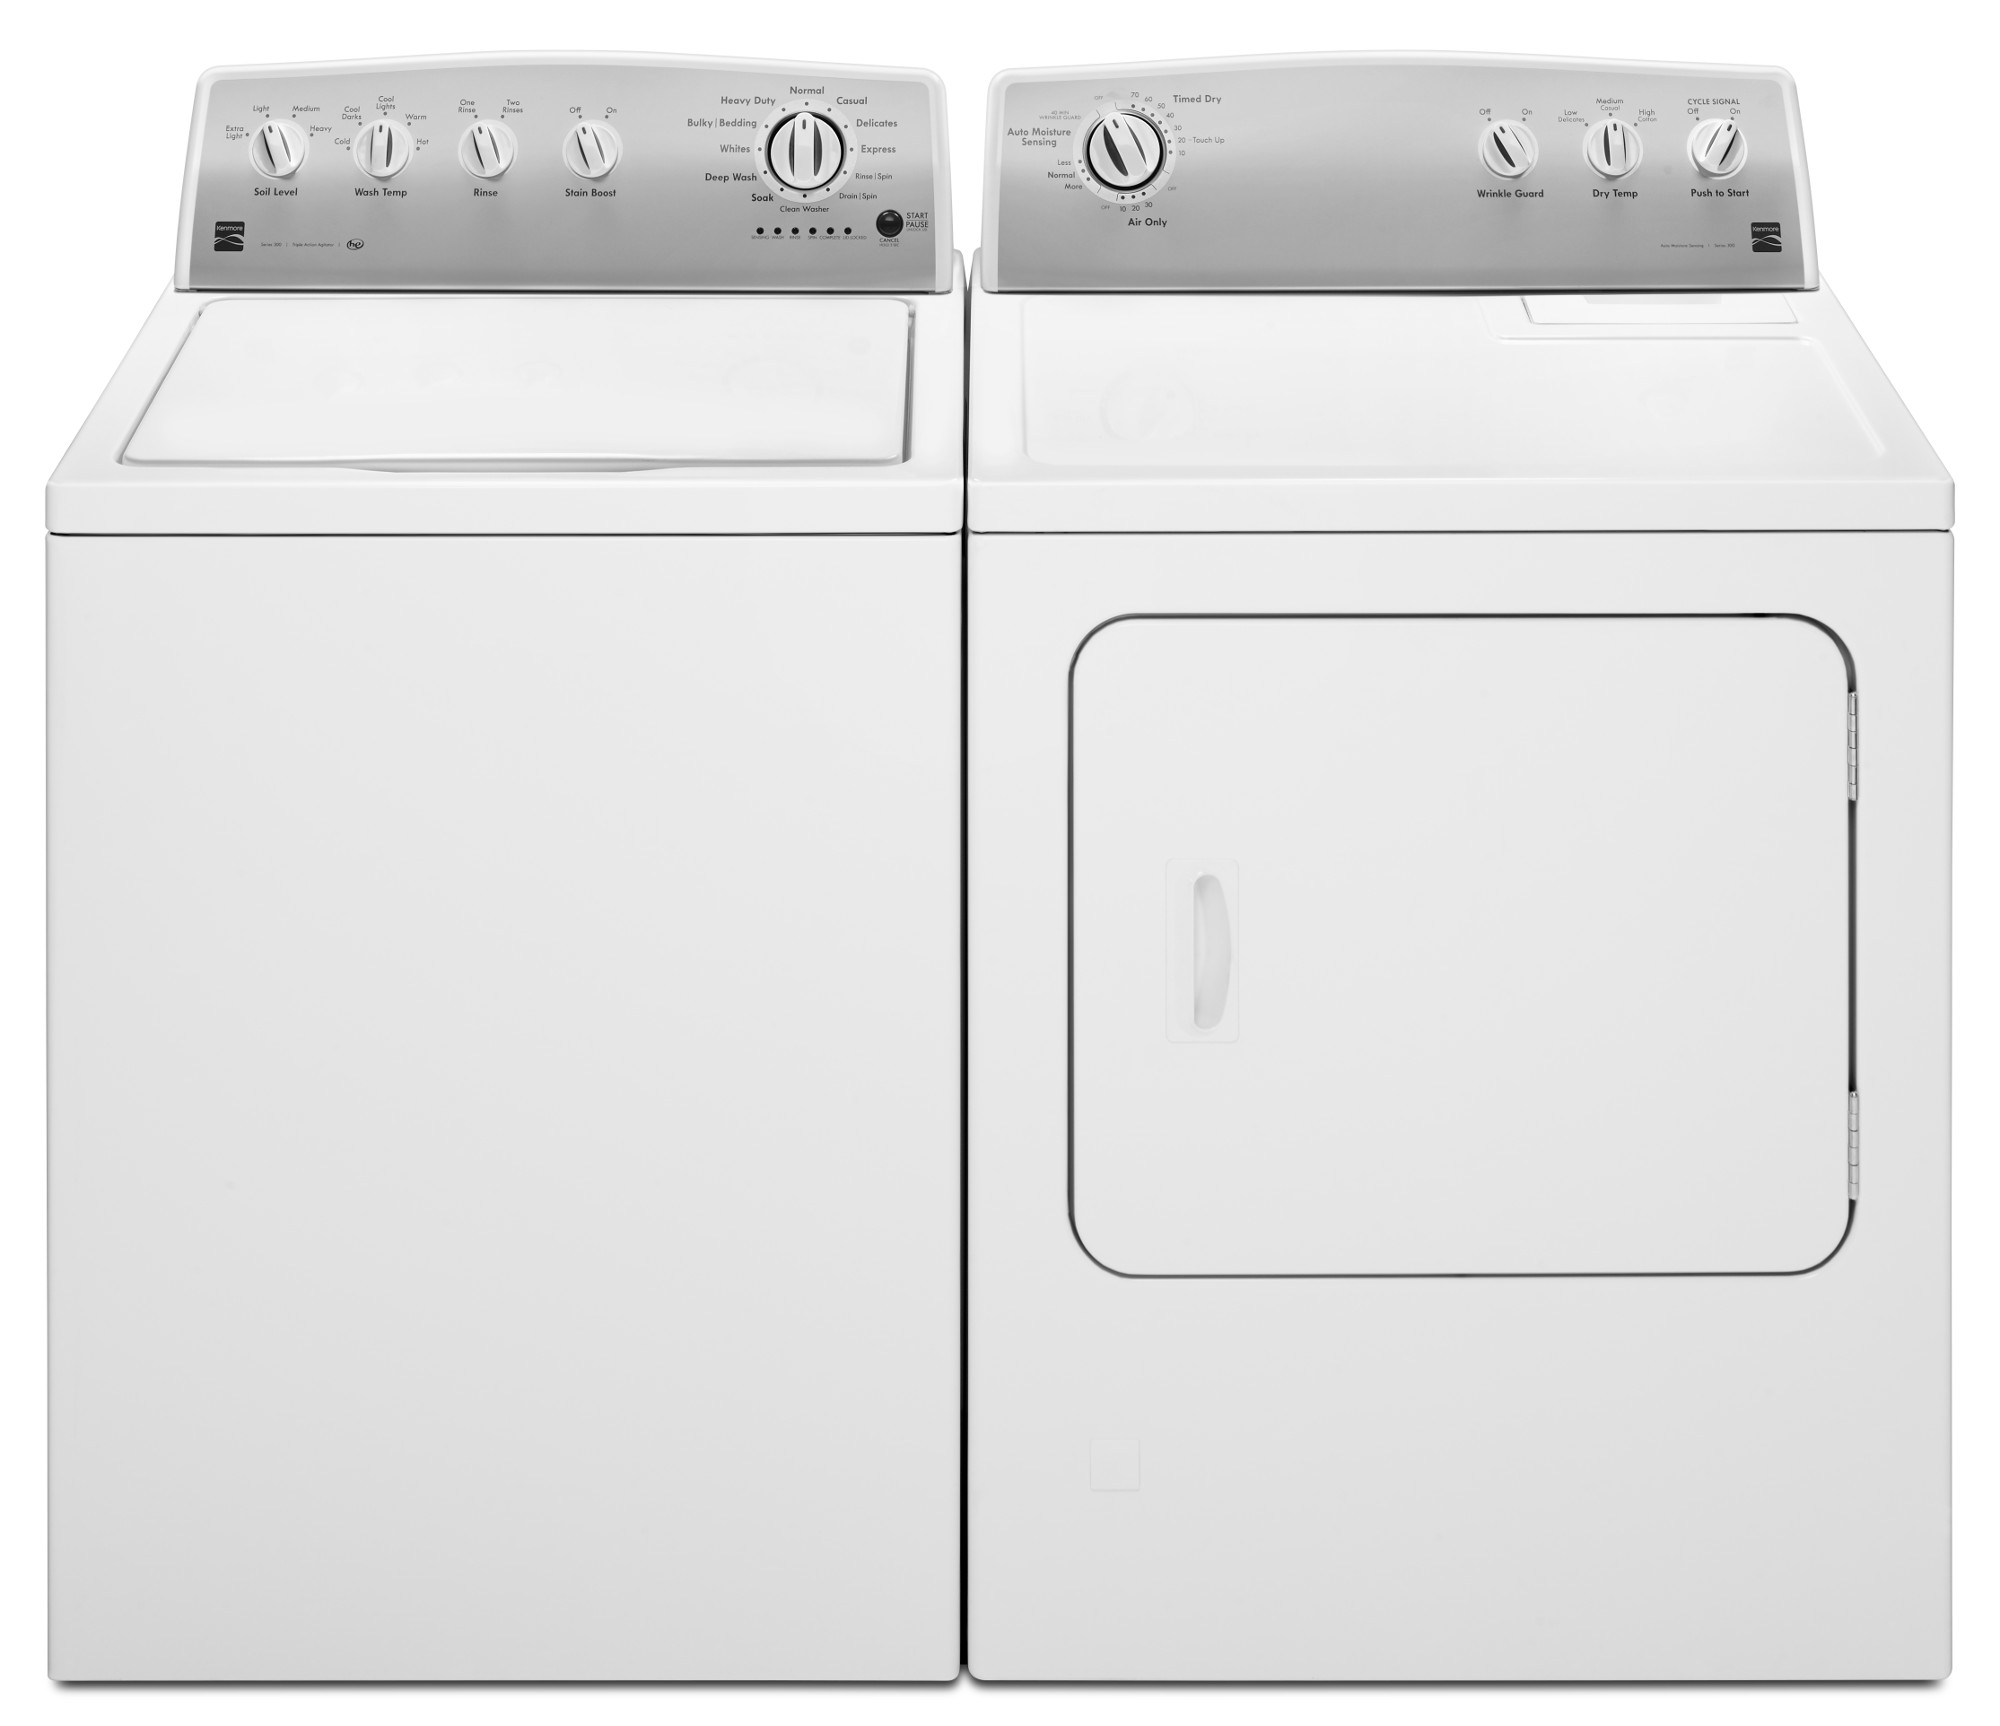 3.6 cu. ft. Agitator Top-Load Washer & 7.0 cu. ft.Gas or Electric Dryer - White